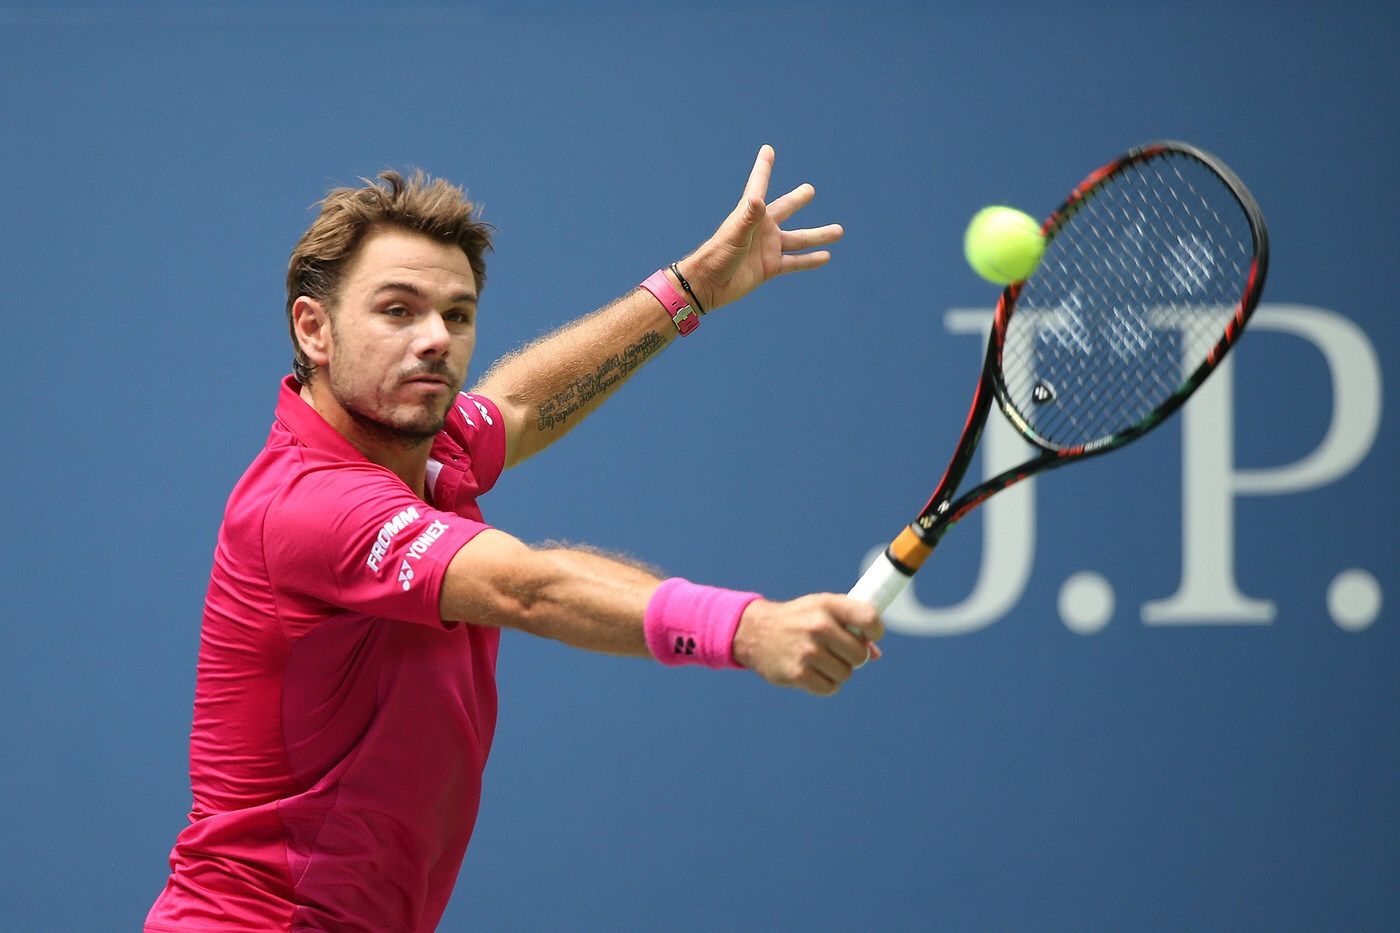 Men S Round 1 Continues August 30 2016 Stan Wawrinka In Action Against Fernando Verdasco During The 2016 Us Open At Stan Wawrinka Tennis Professional Tennis